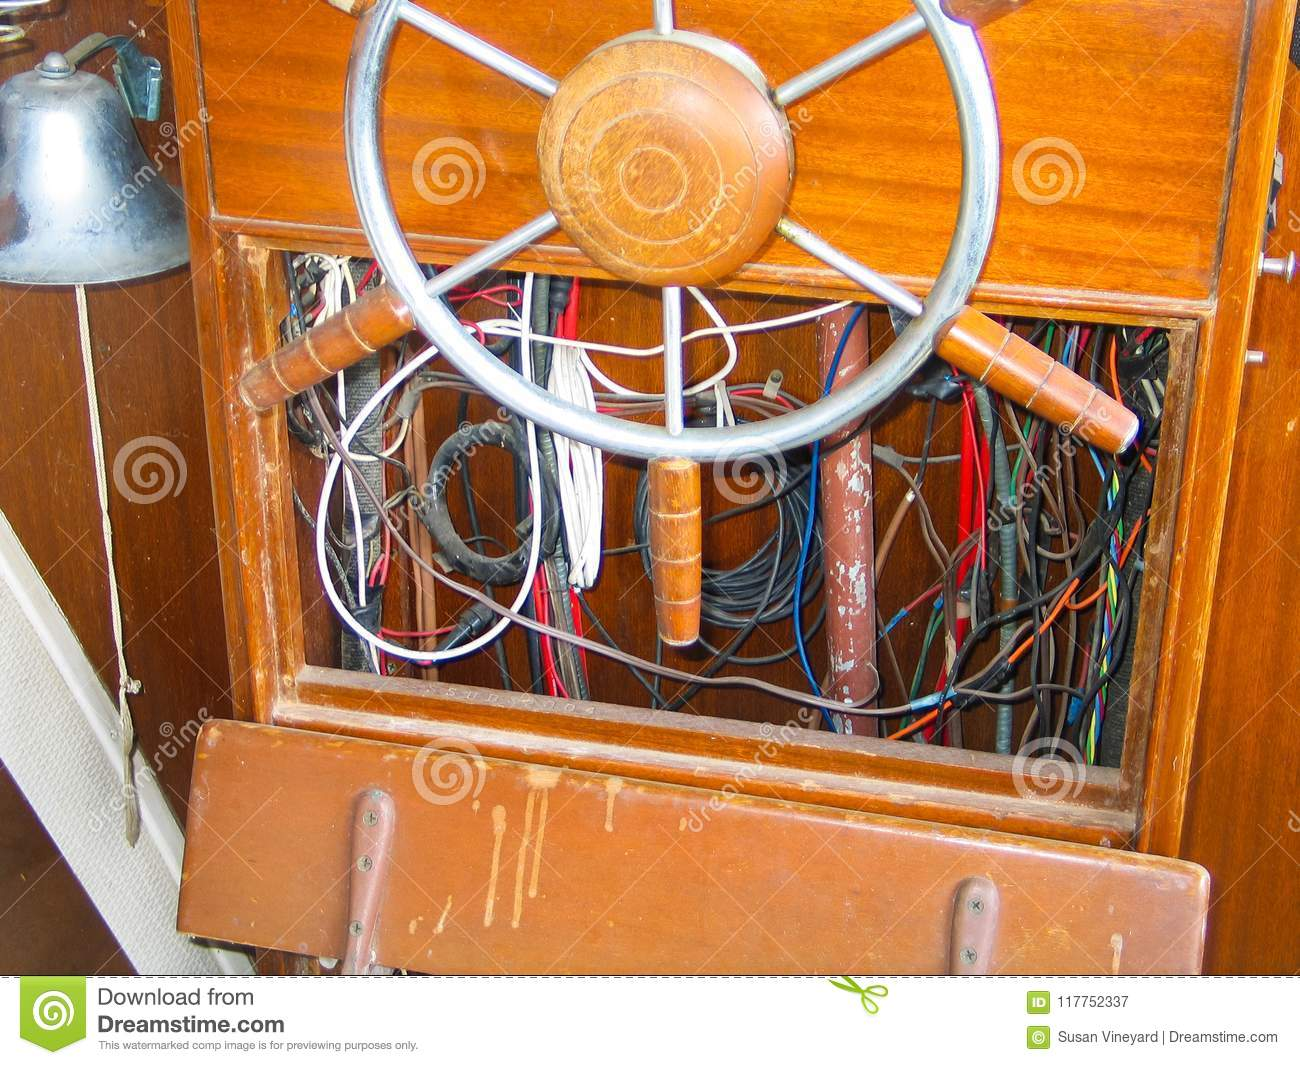 steering wheel and exposed wiring inside helm of old wooden boat Simple Boat Wiring a steering wheel and exposed wiring inside helm of old wooden boat